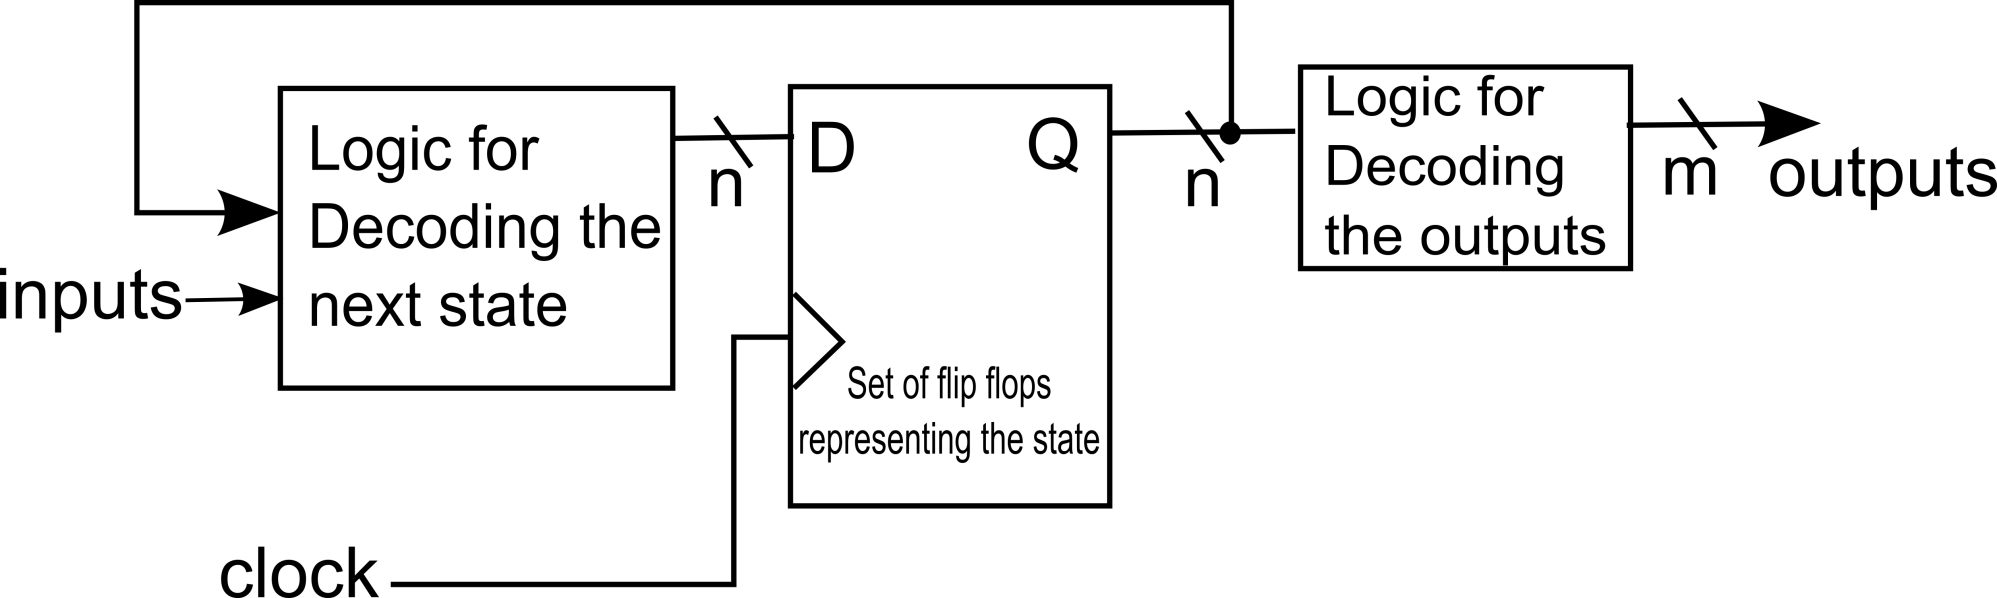 hight resolution of block diagram representation of logic created for a state machine